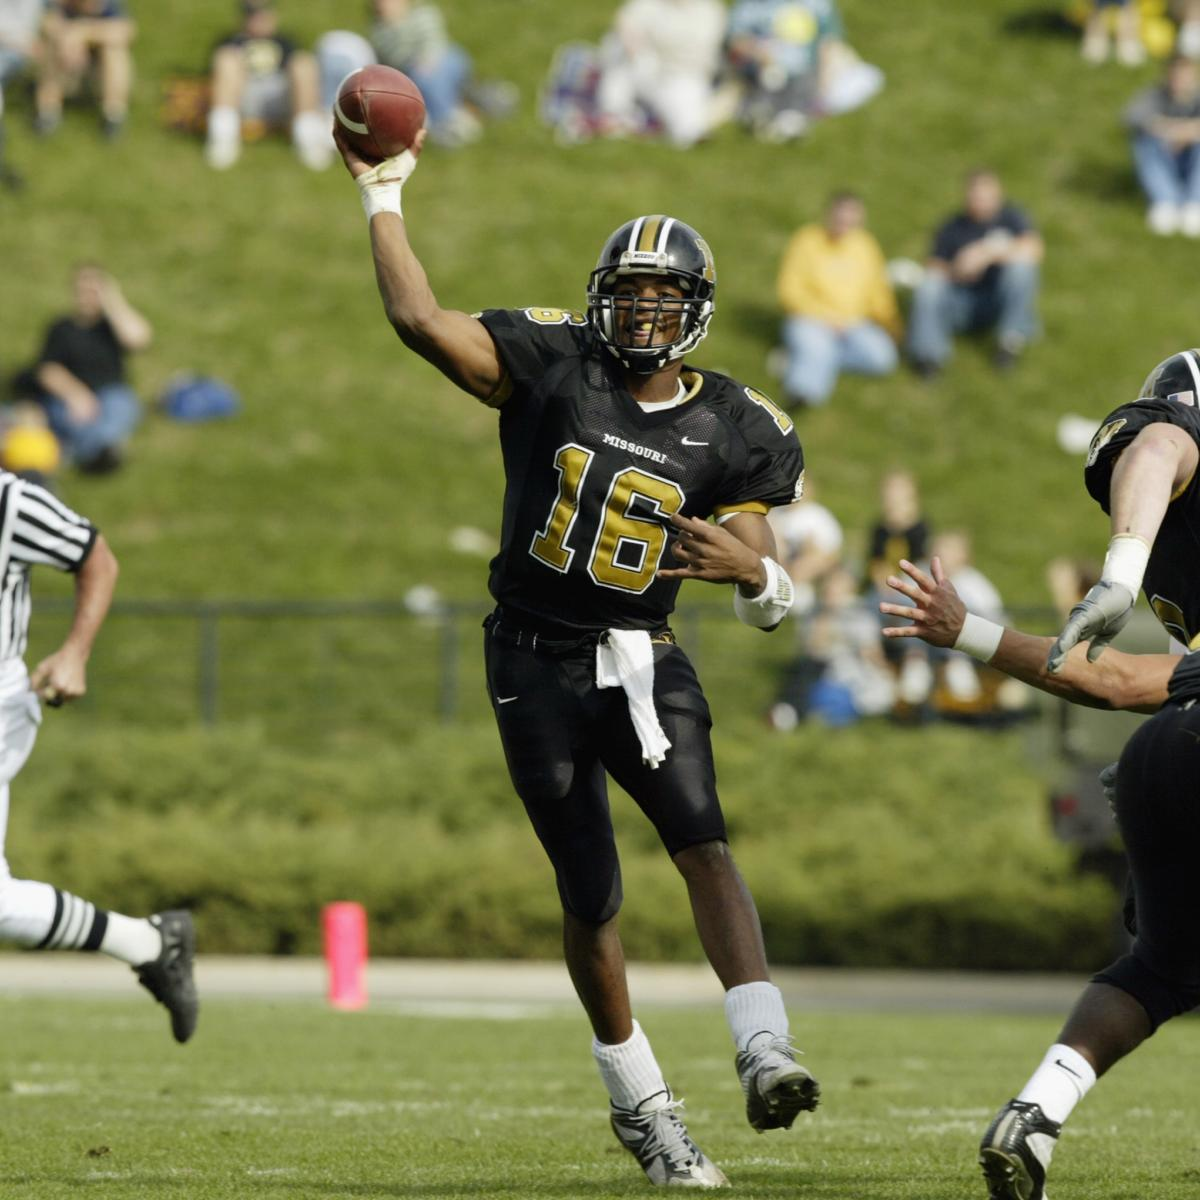 Top 10 Missouri Tigers Football Pictures by the Press ...